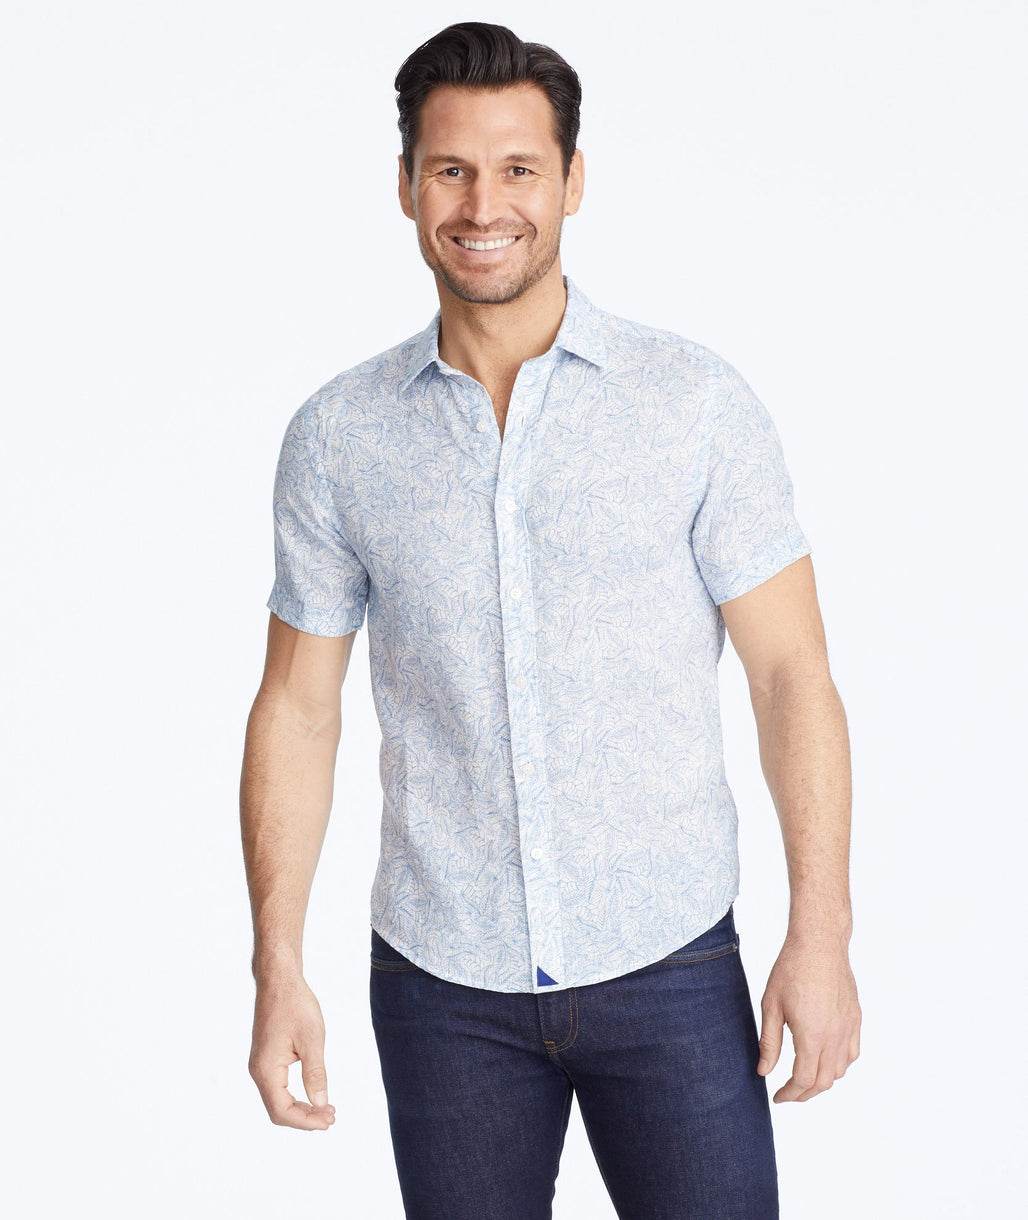 Model wearing a Blue Linen Short-Sleeve Terlan Shirt